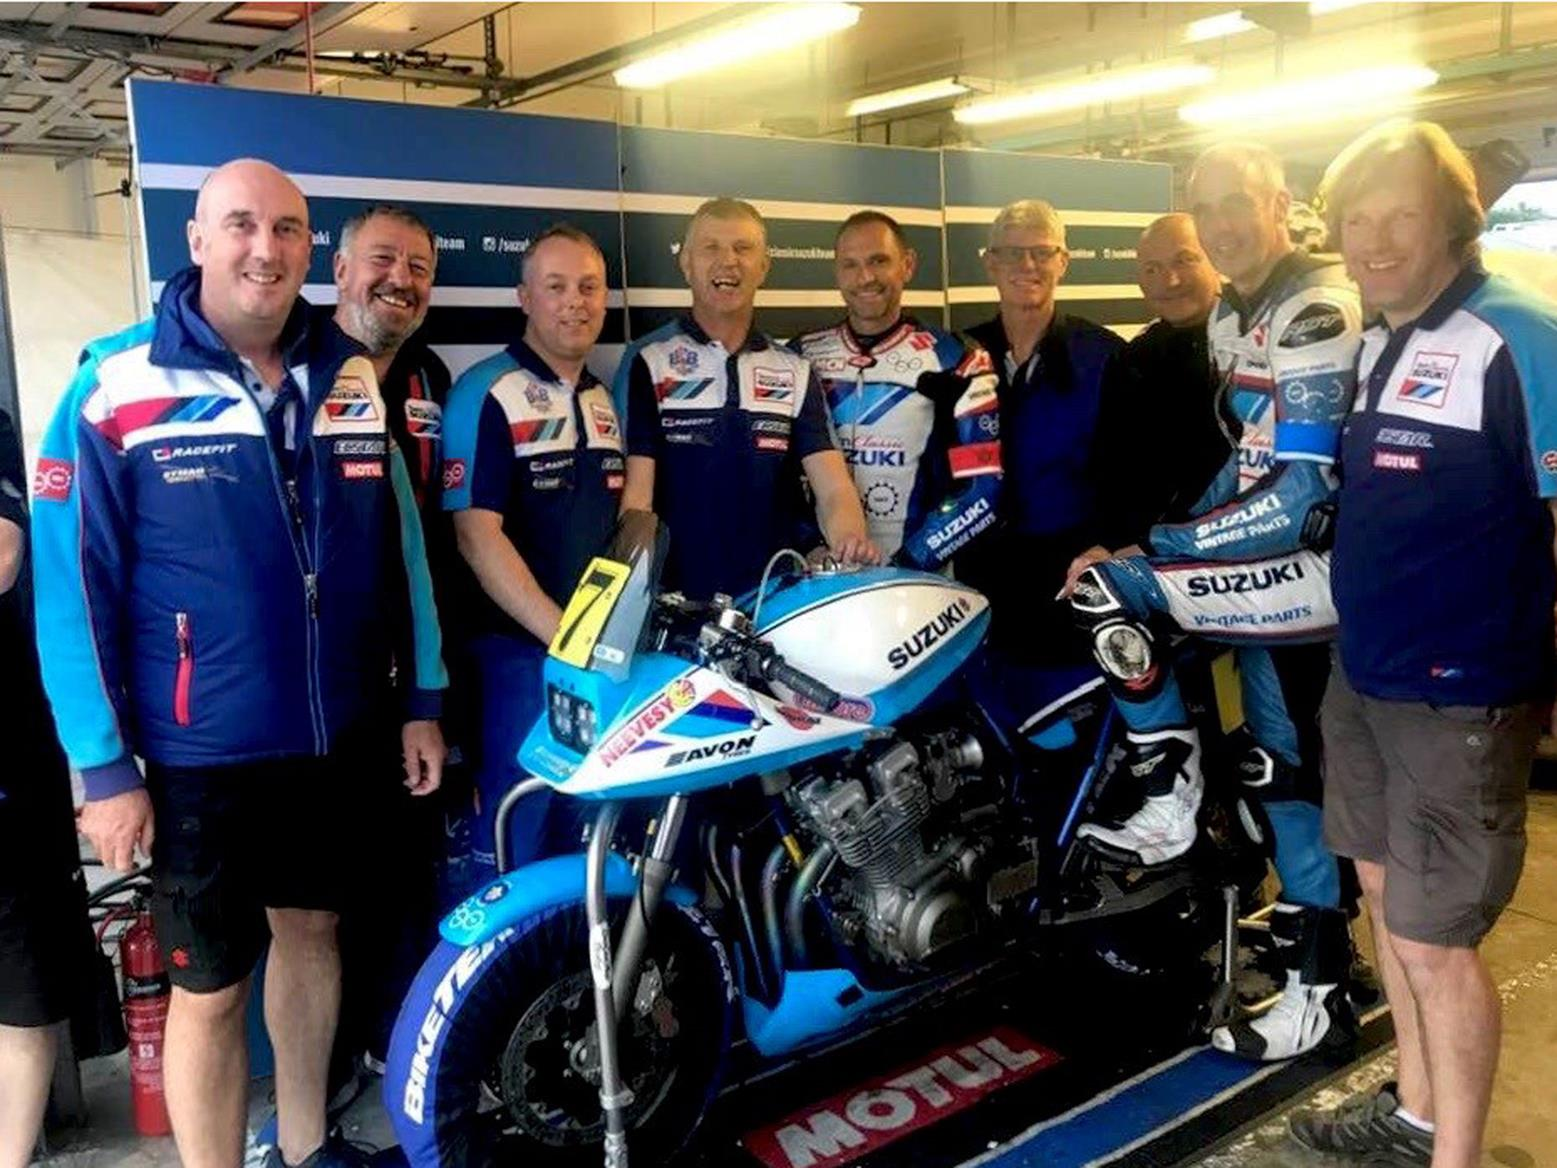 The dream team at Team Suzuki Classic with the Katana